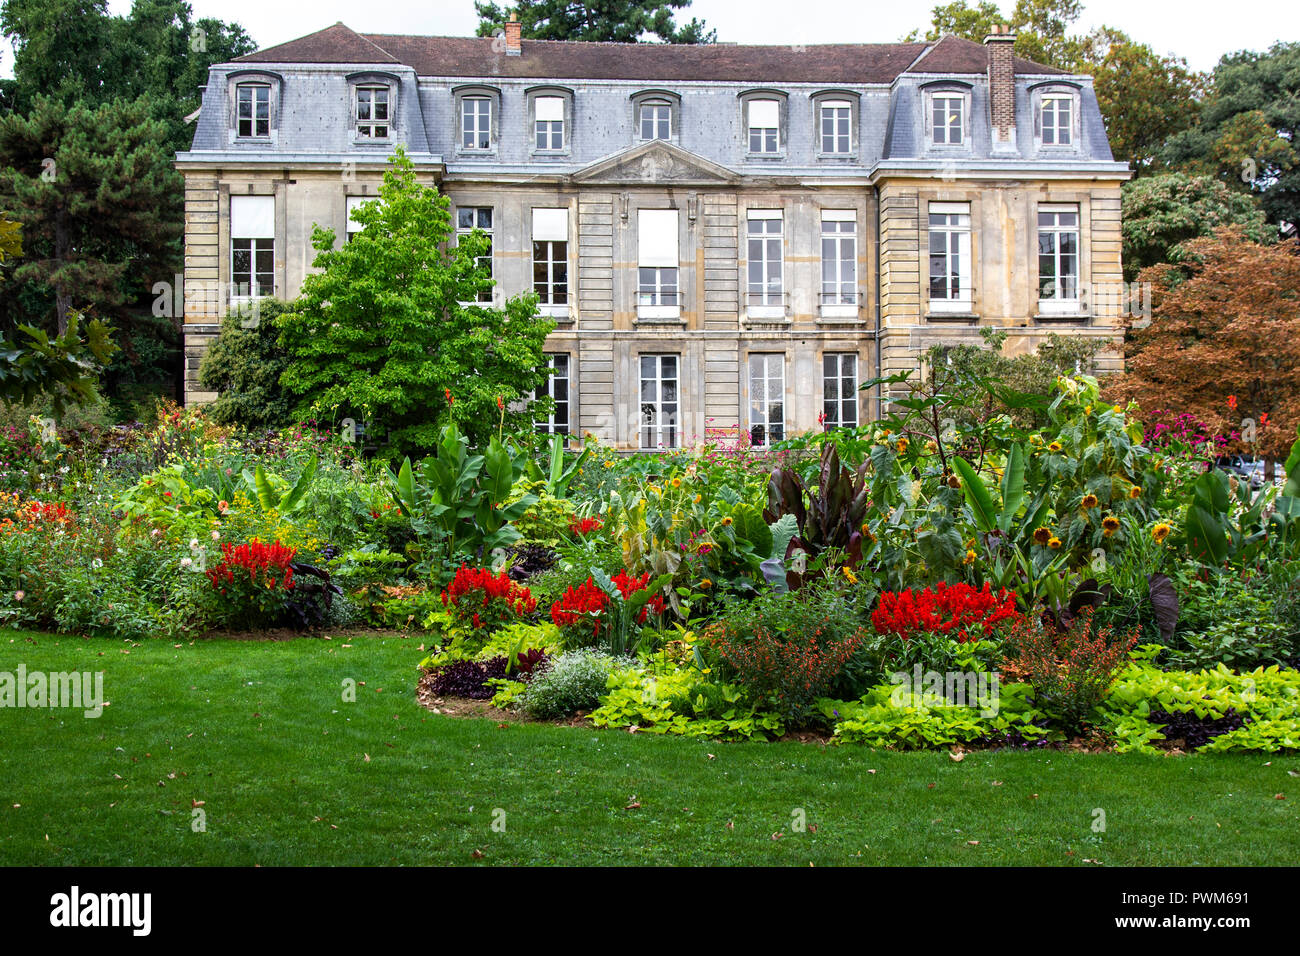 The Jardin des Plantes is one of seven departments of the Museum National d'Histoire Naturelle.  Three hectares are devoted to horticultural displays  Stock Photo